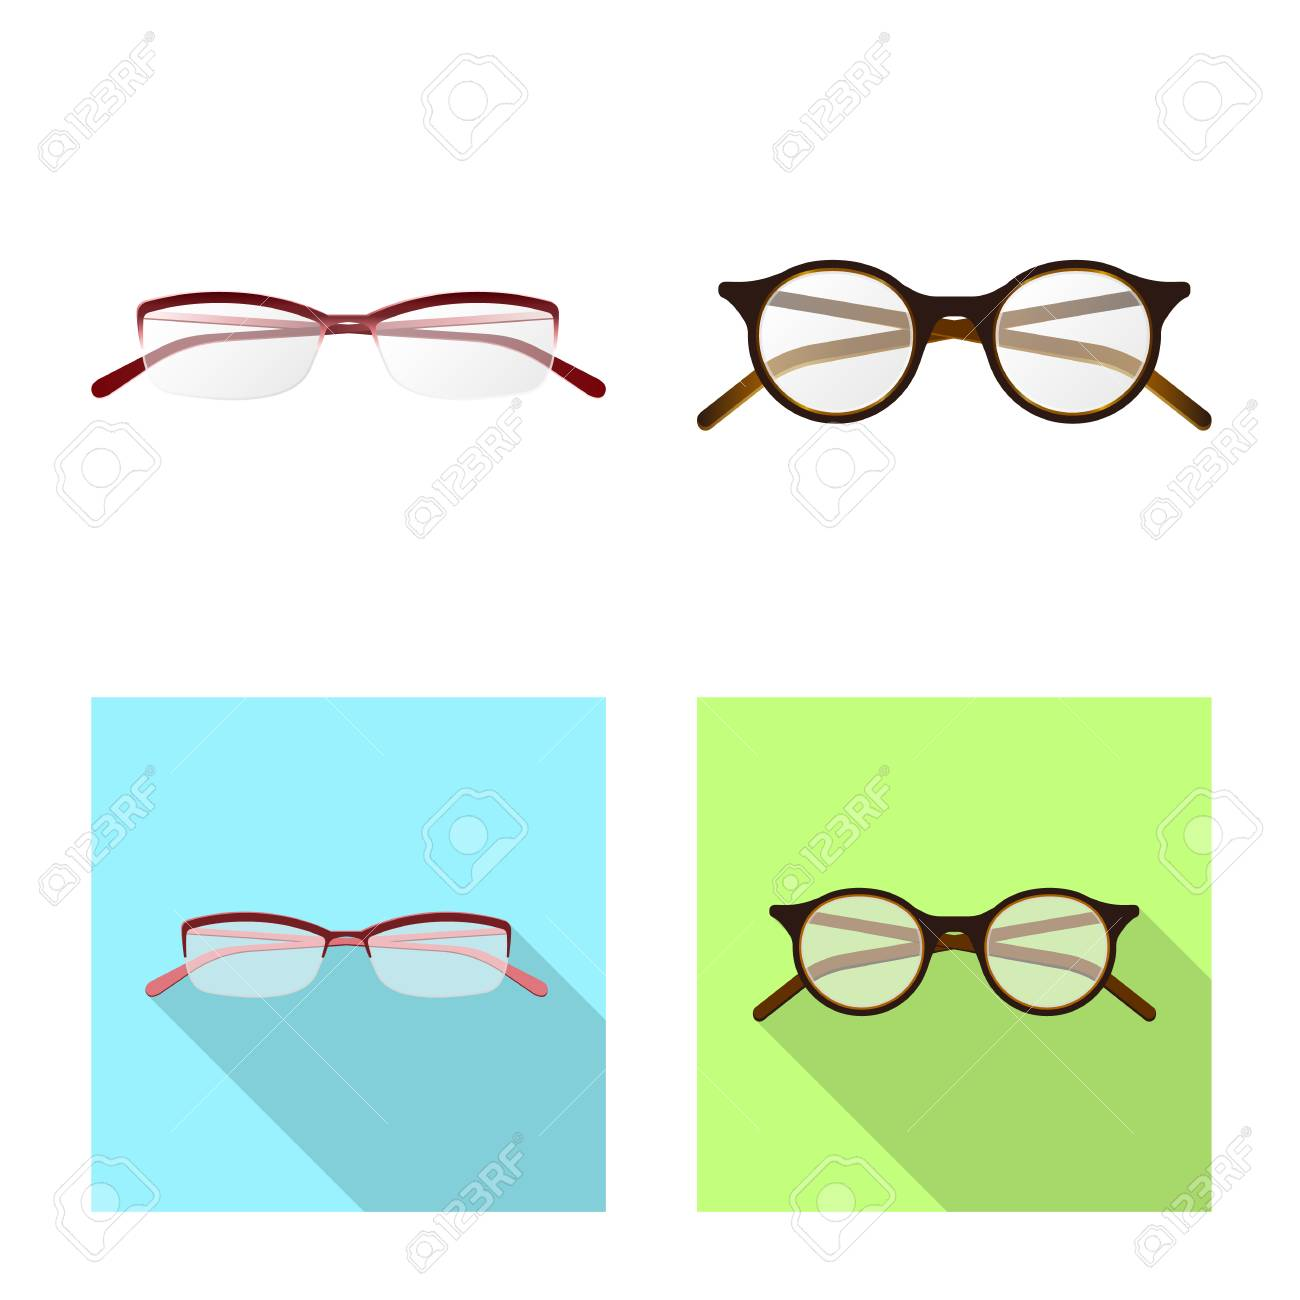 44bb6ee1268d Isolated object of glasses and frame symbol. Collection of glasses and  accessory stock vector illustration